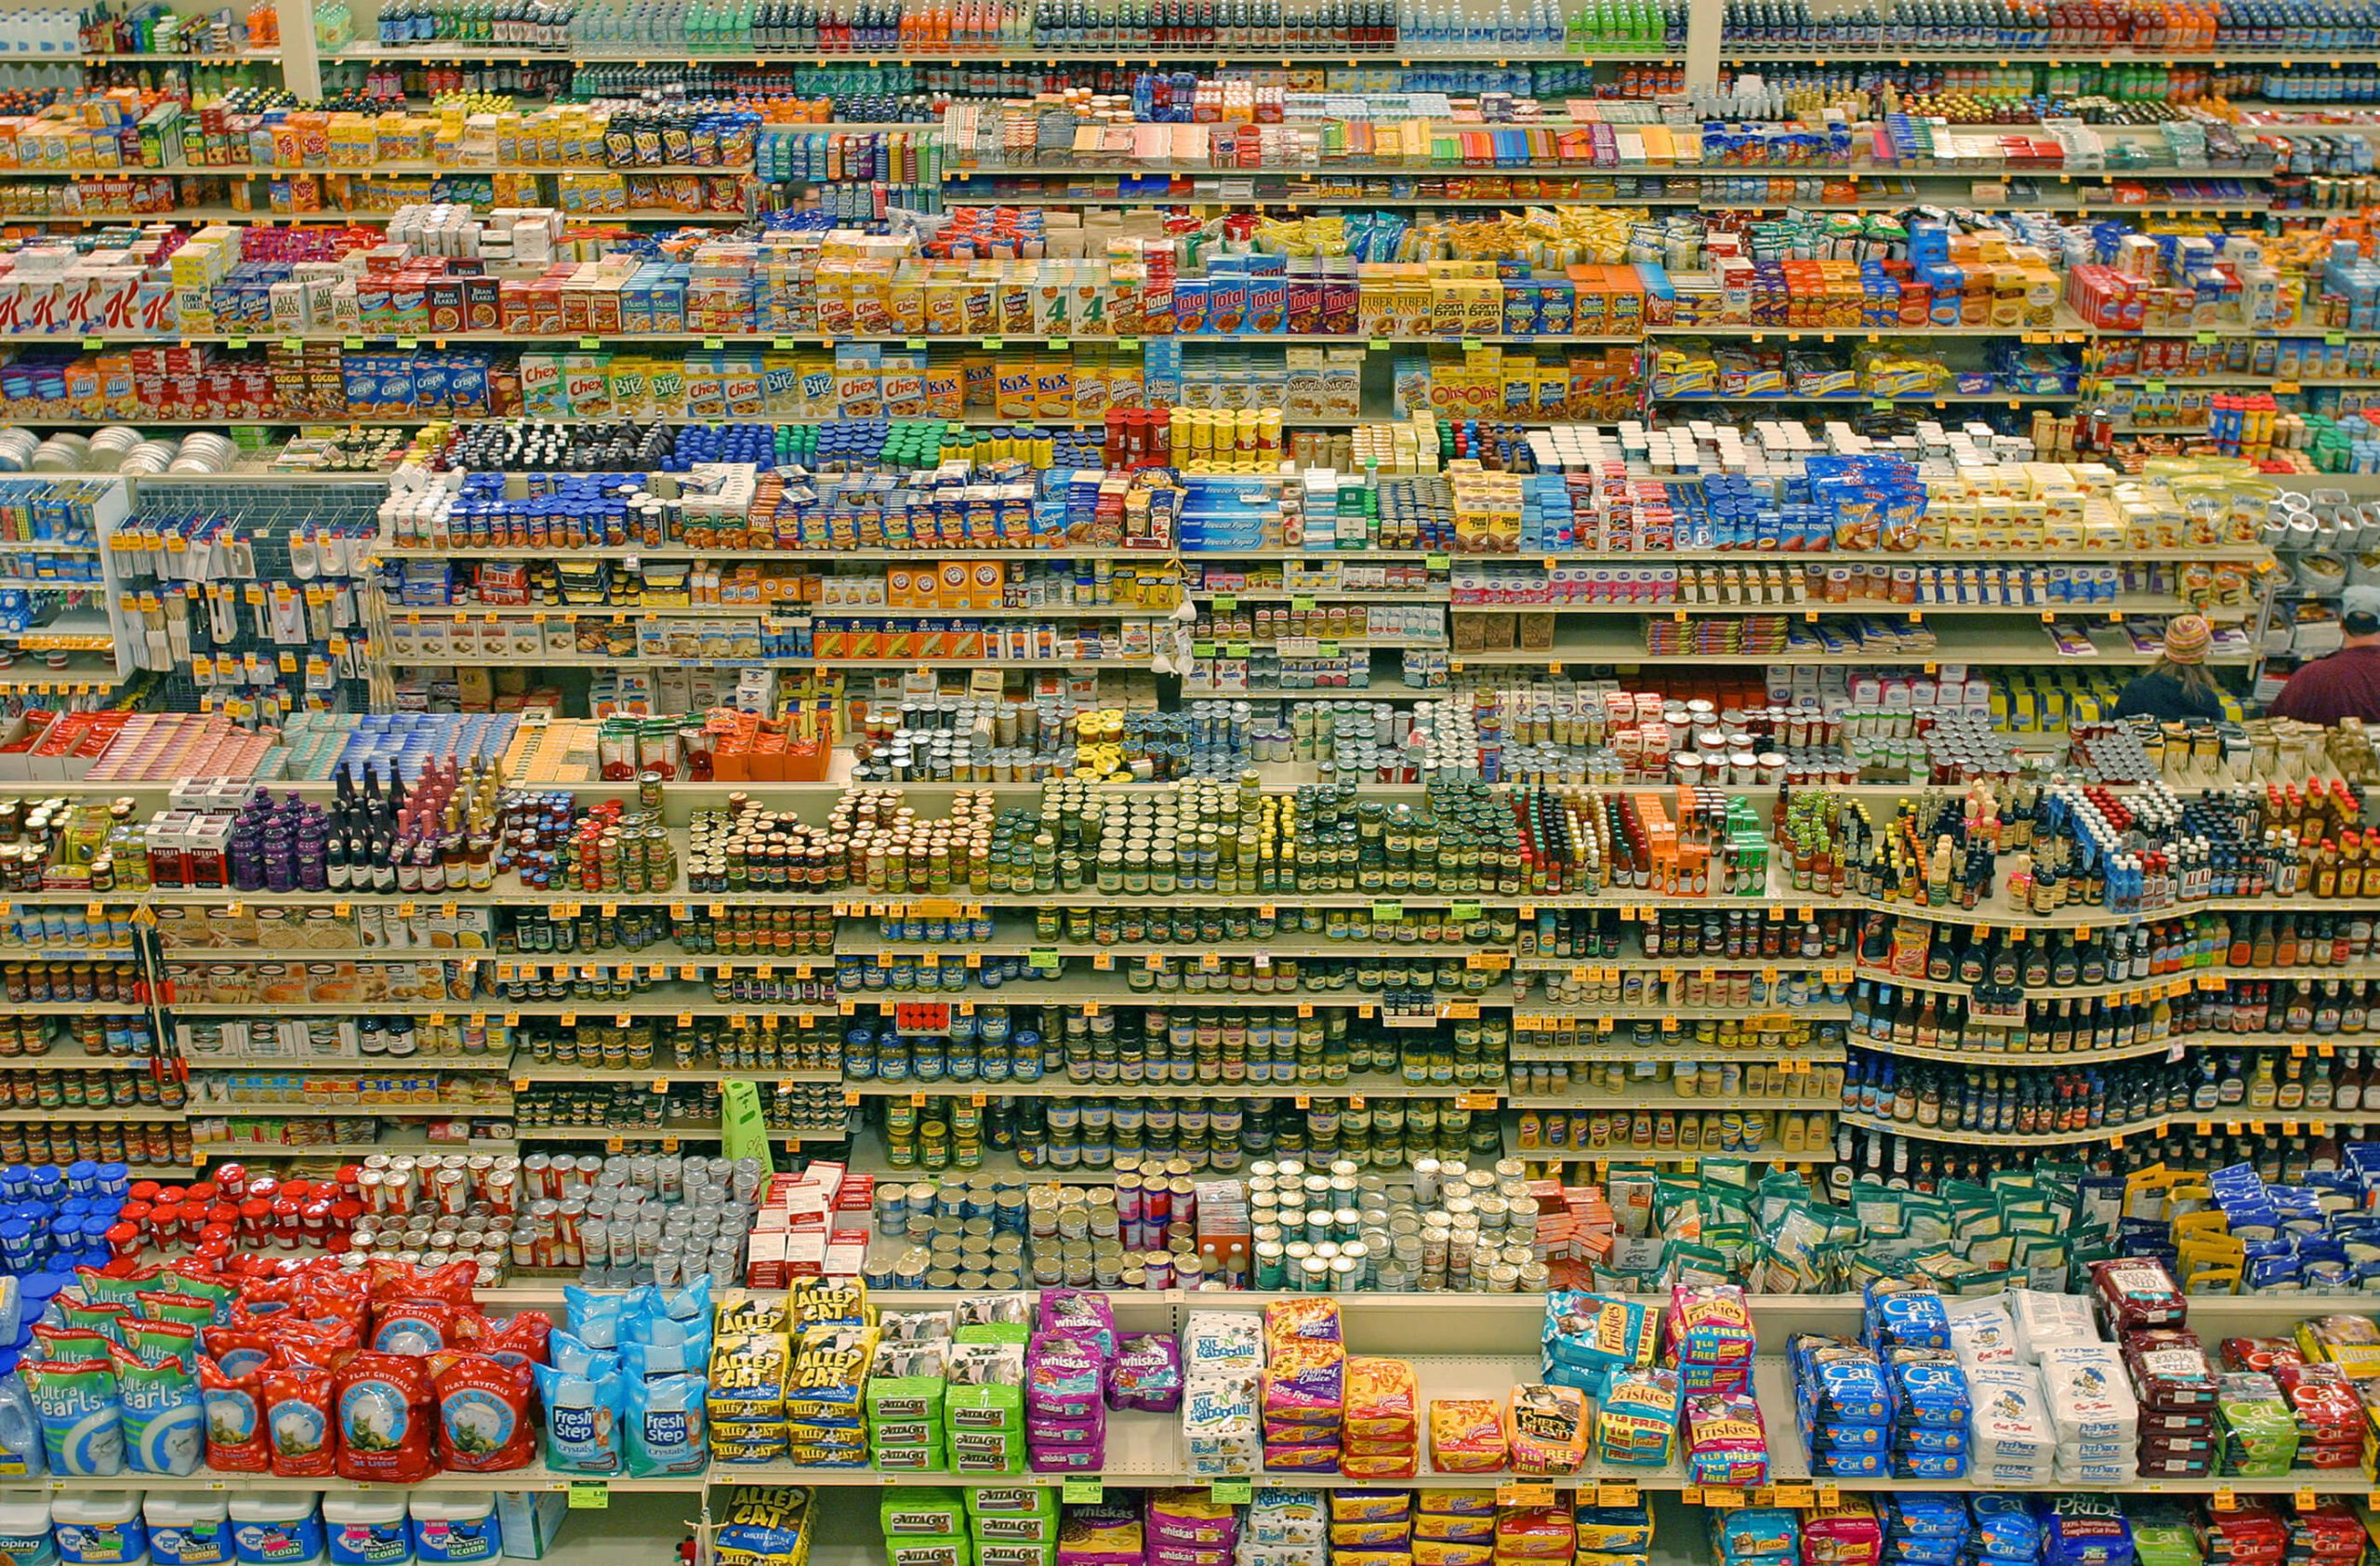 CPG - Consumer packaged goods - open innovation - hackathon